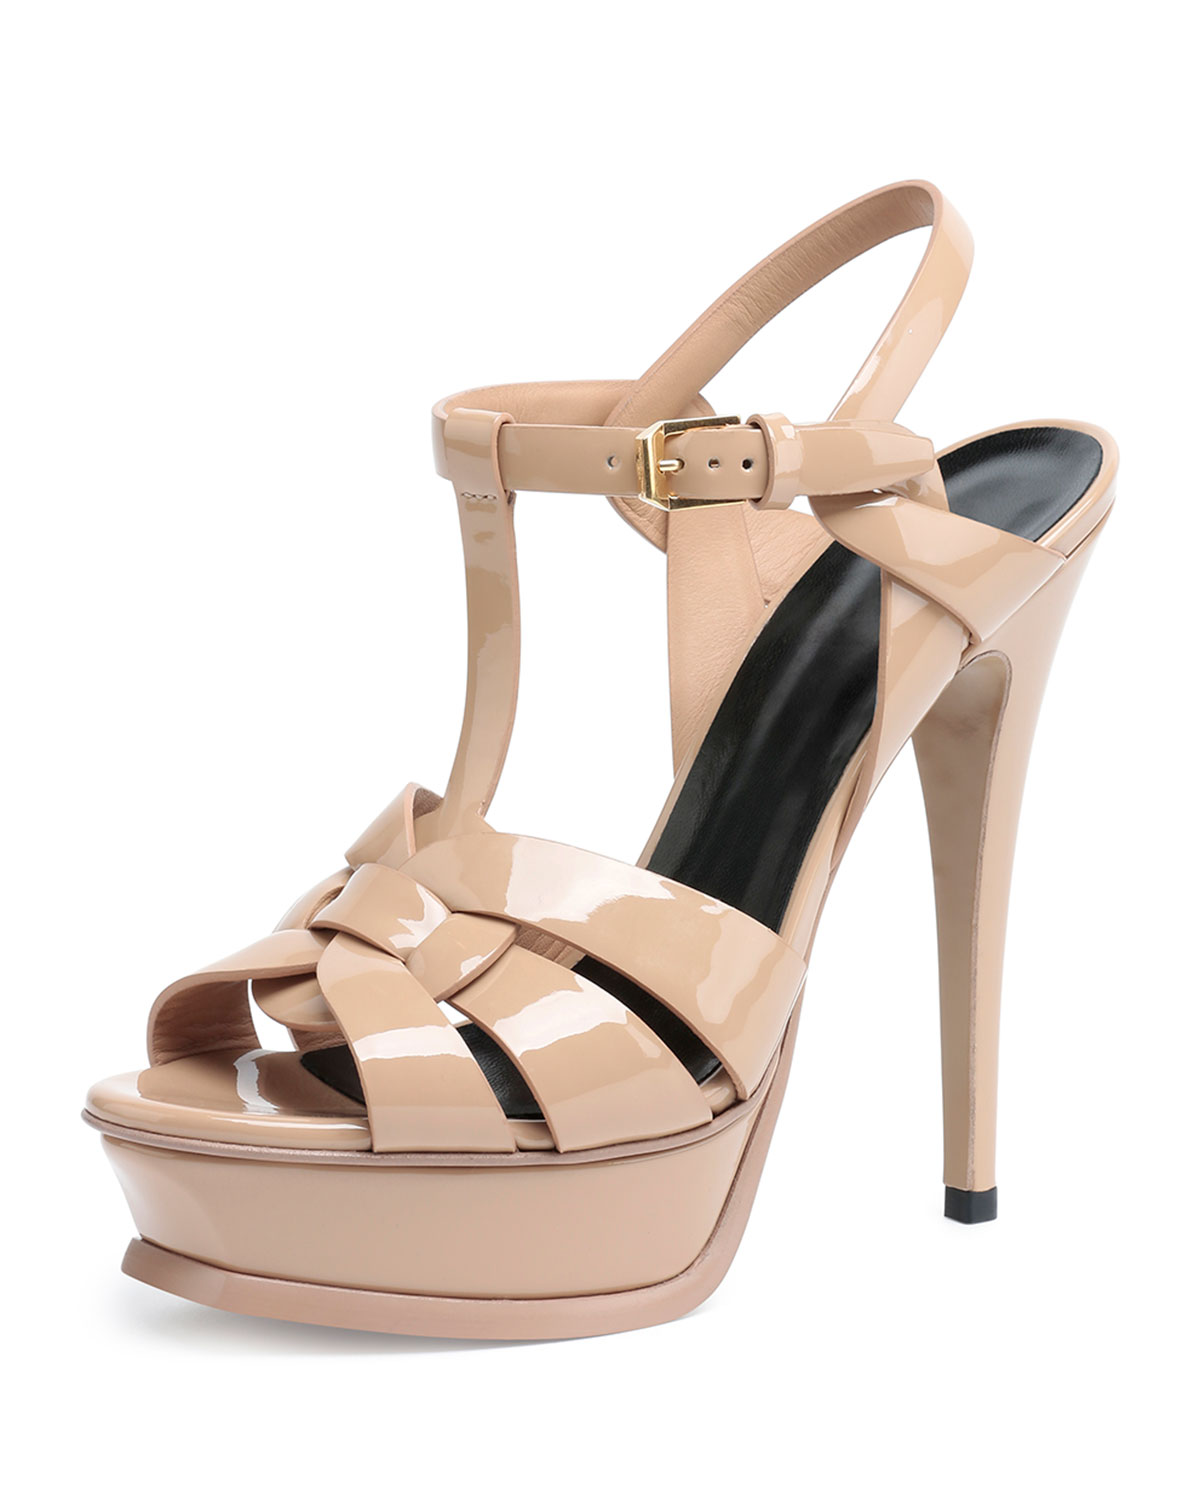 54aeb714019 Saint Laurent Tribute Patent Leather Sandal